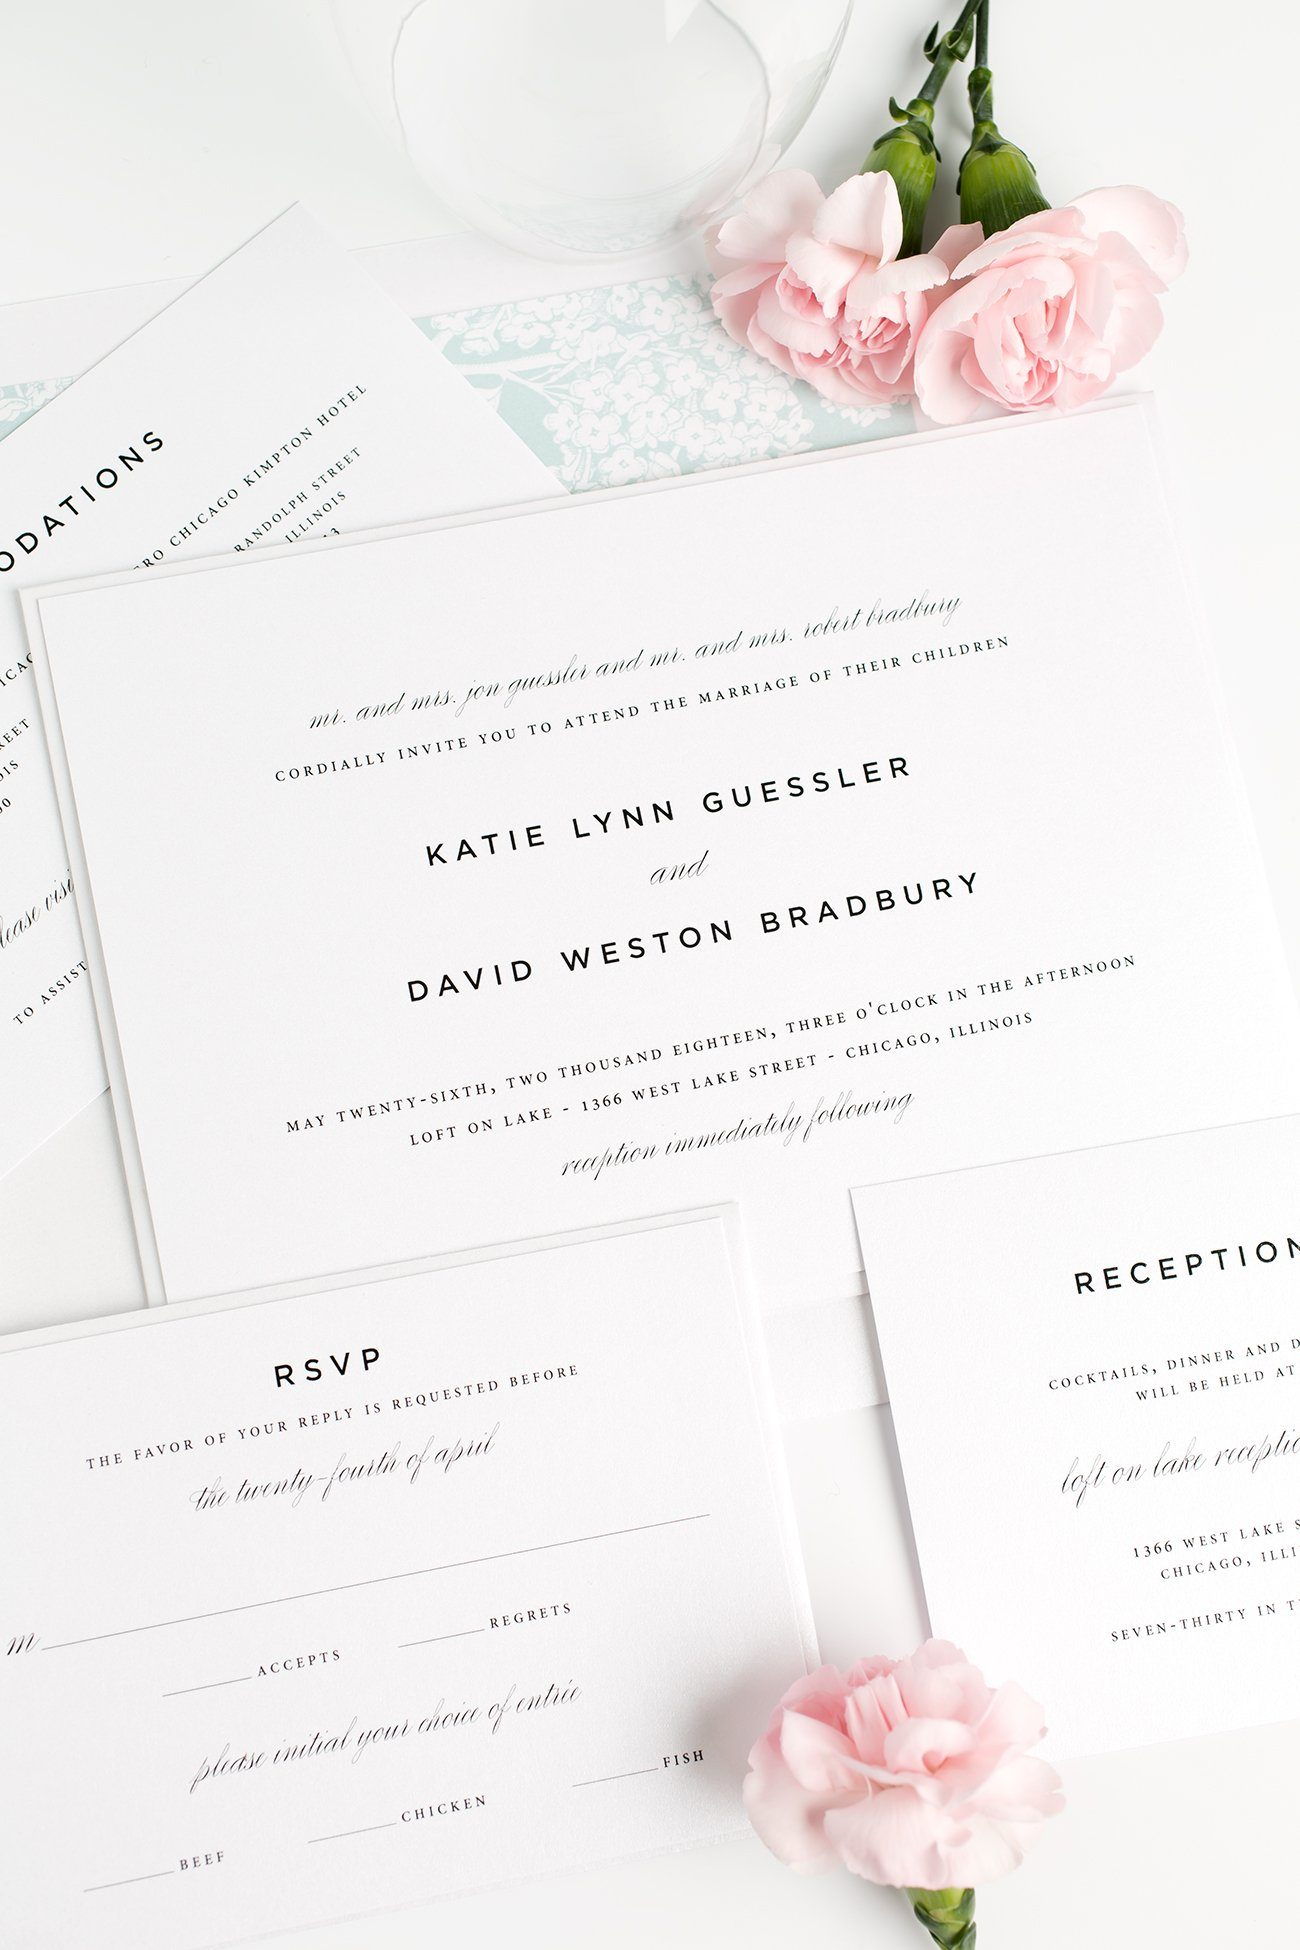 Classic Wedding Invitations in Mint Green with a Floral Envelope Liner